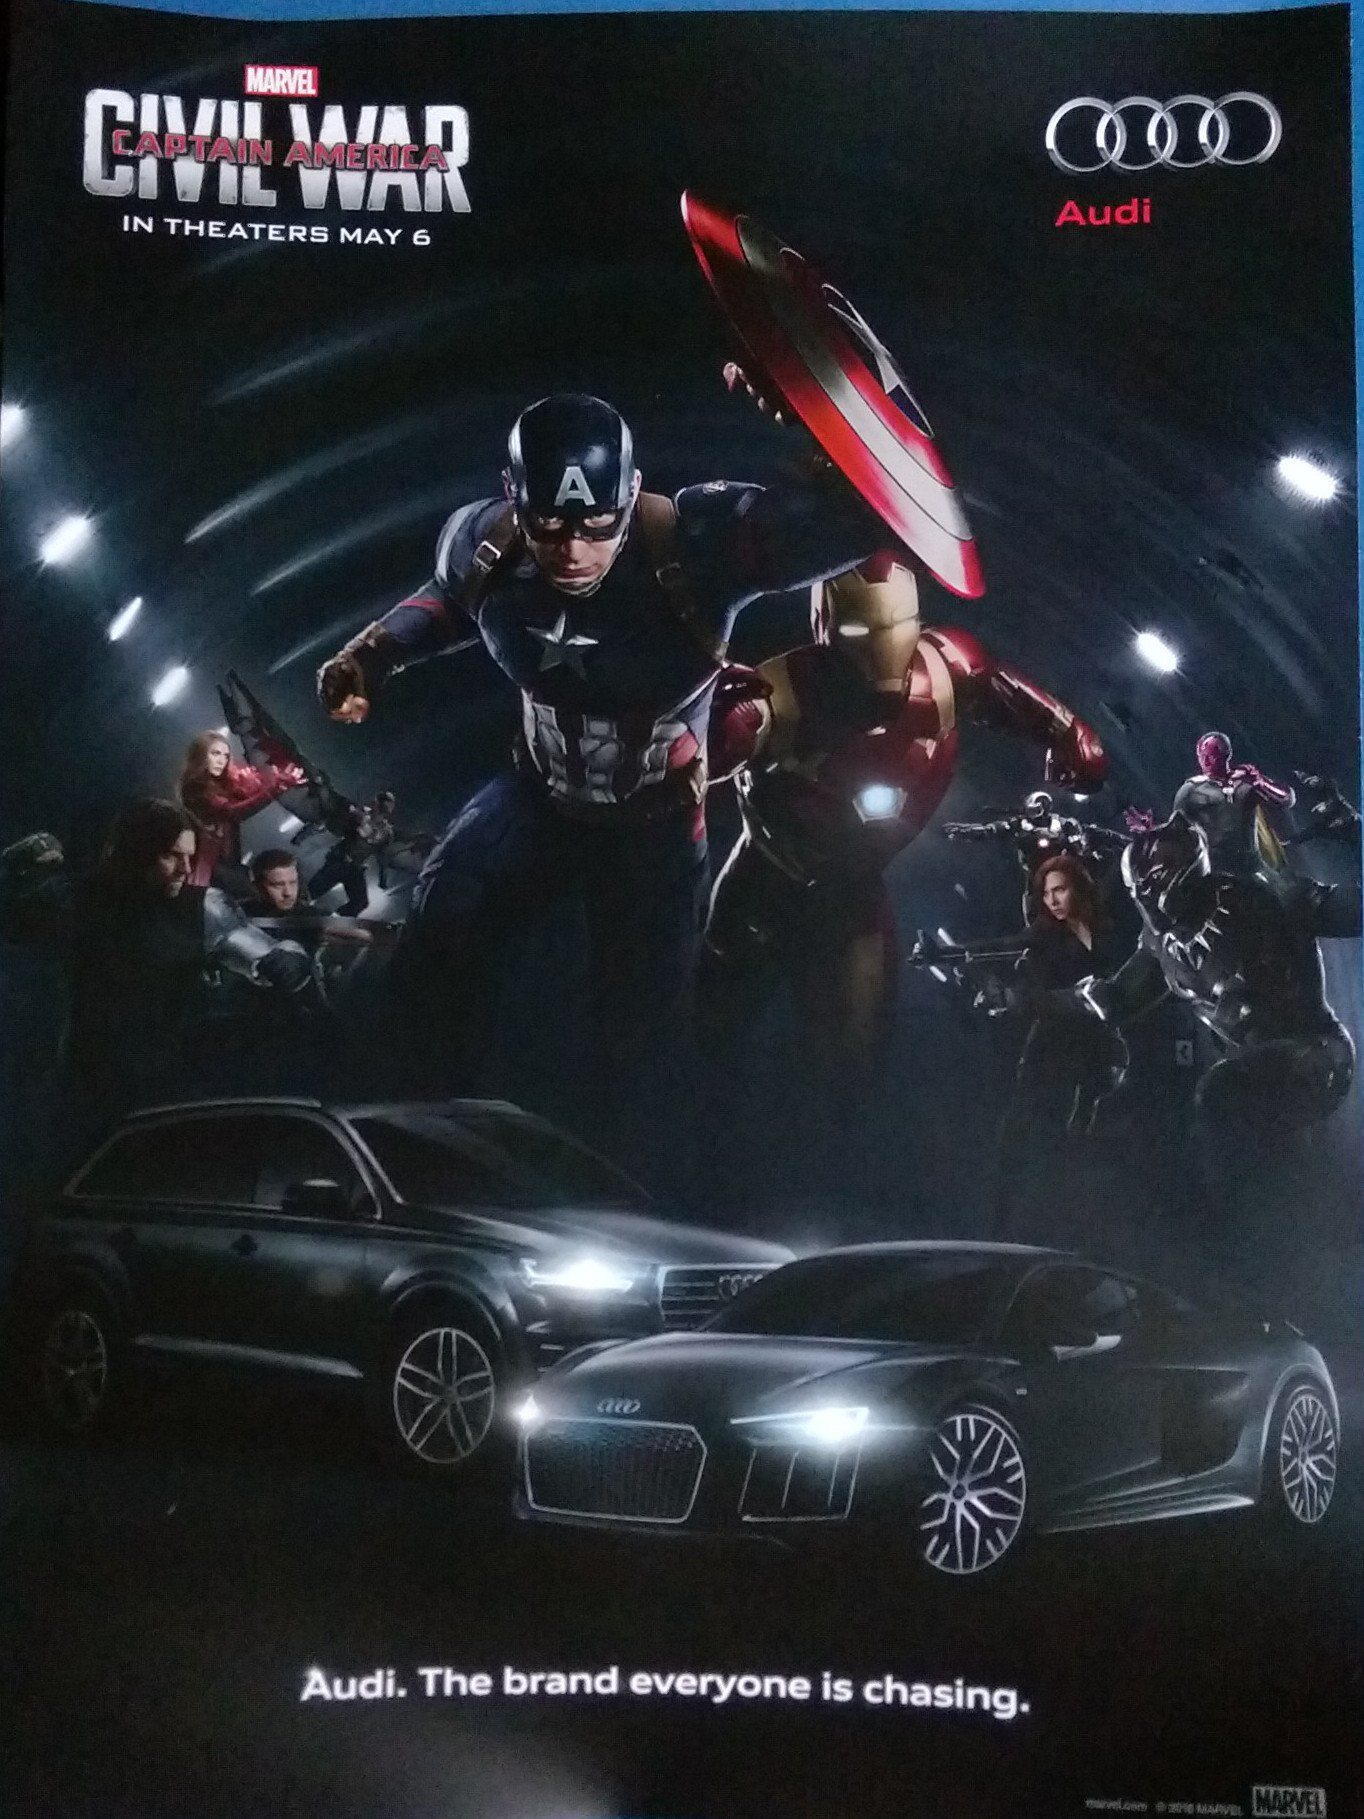 Image Captain America Civil War Audi Promo Jpg Marvel